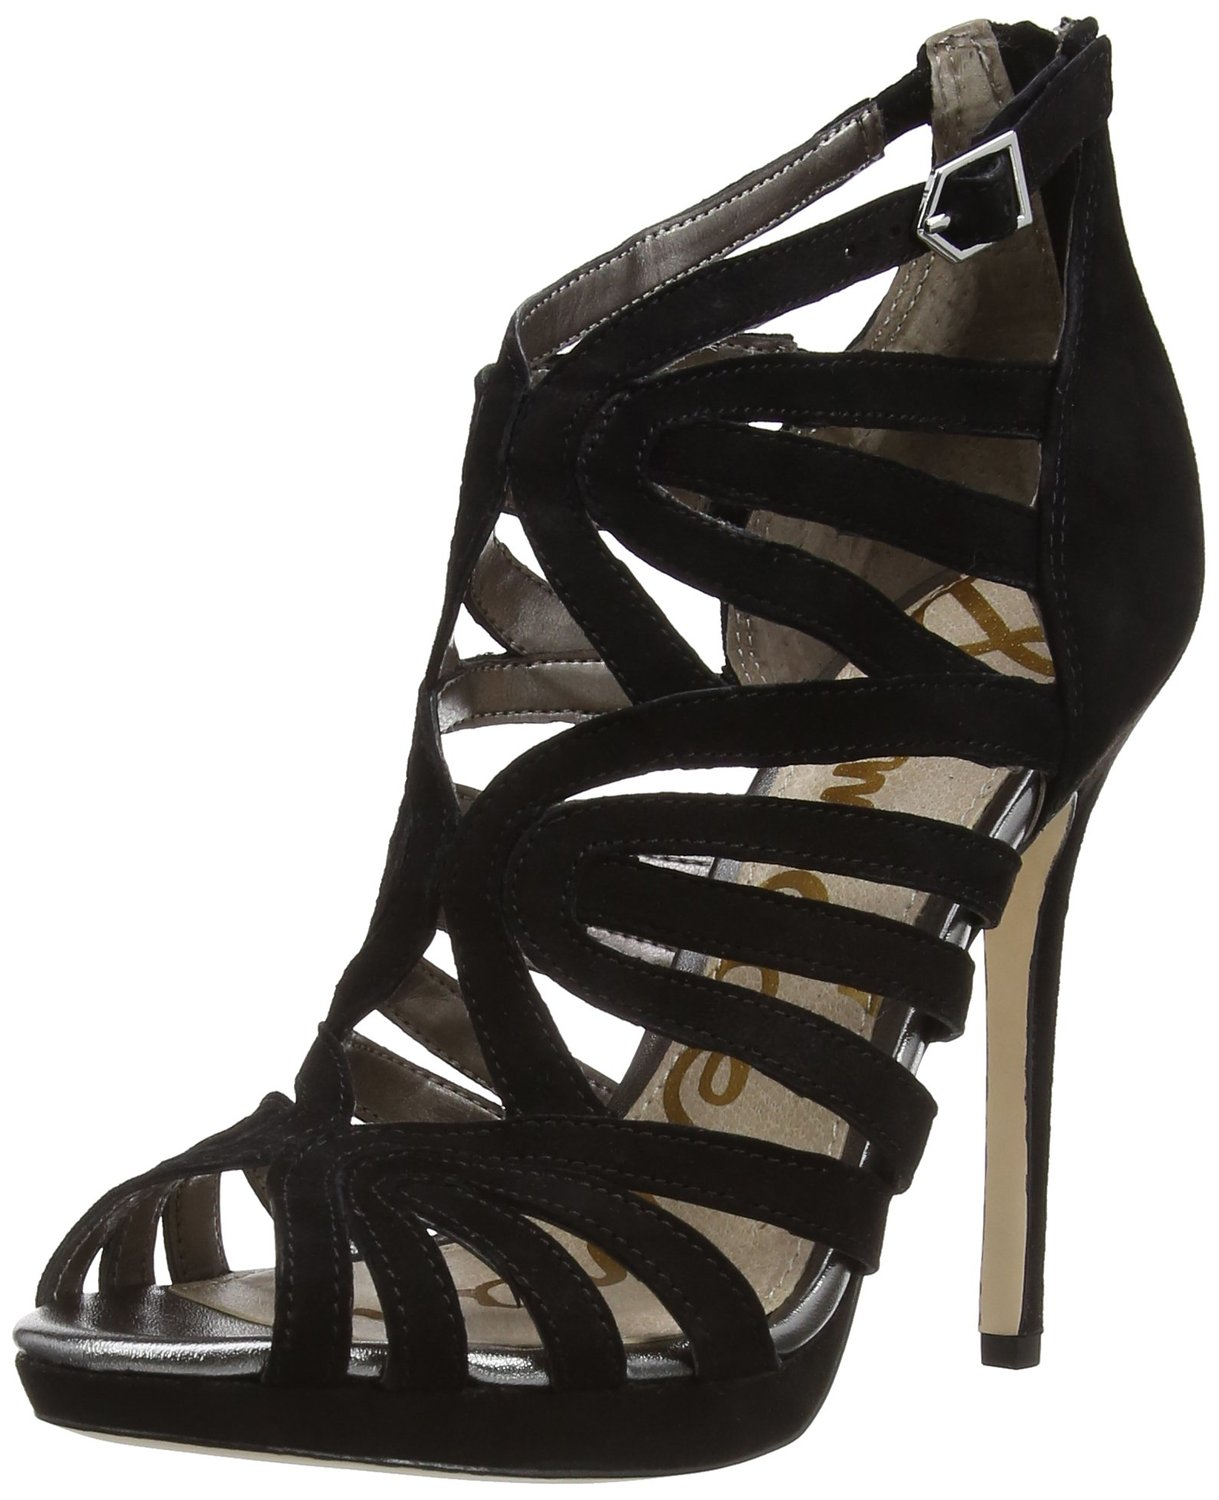 e6222be8c0e429 Sam Edelman Eve High Heel Dress Sandal Black Color